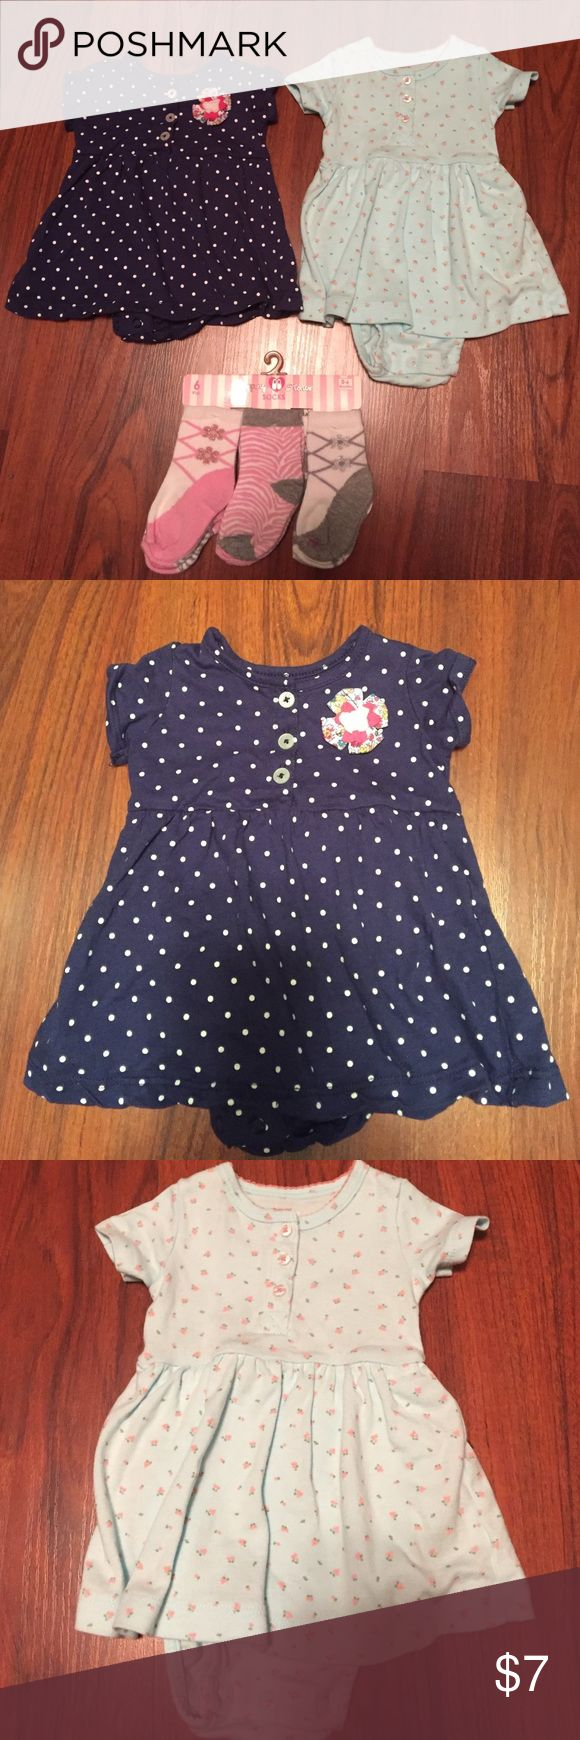 Carter dresses NWOT. Two adorable dresses! Throwing the socks in for free! Perfect for spring it'll be here eventually. carters Dresses Casual